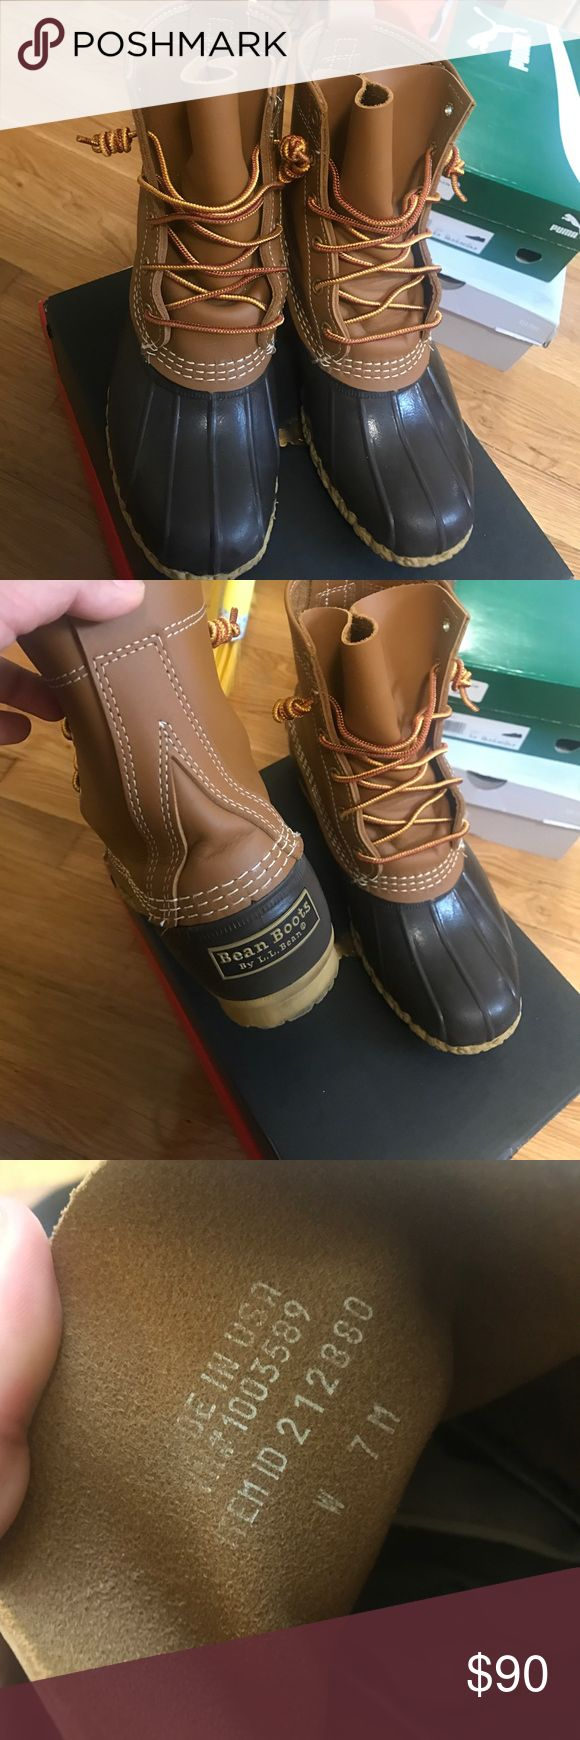 Ll bean duck boots Ll bean duck boots in brown. Only worn twice so they're in excellent condition, looking to sell L.L. Bean Shoes Winter & Rain Boots